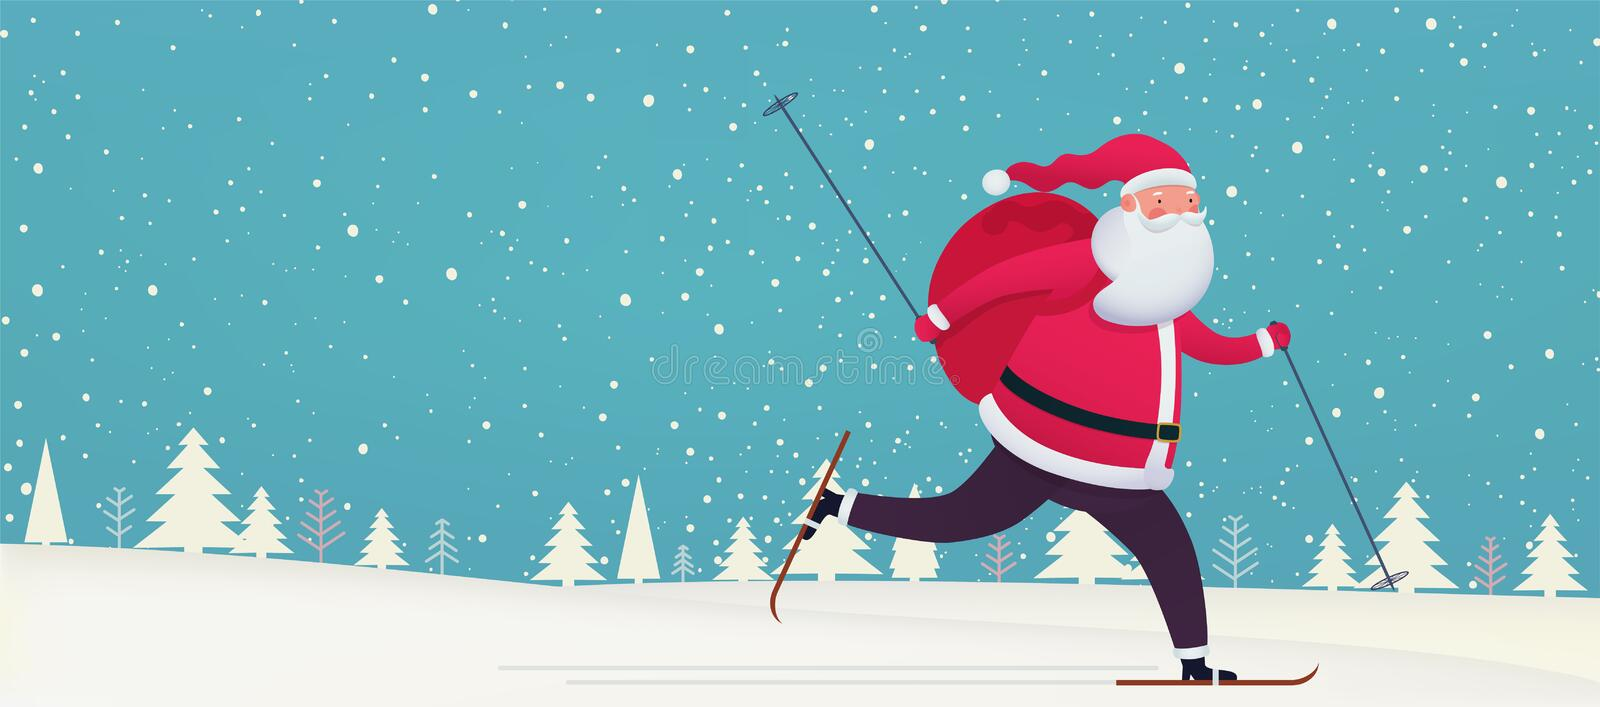 Santa Claus skiing with bag of gifts on snowy background. Merry Christmas and Happy New Year banner. Greeting card royalty free illustration